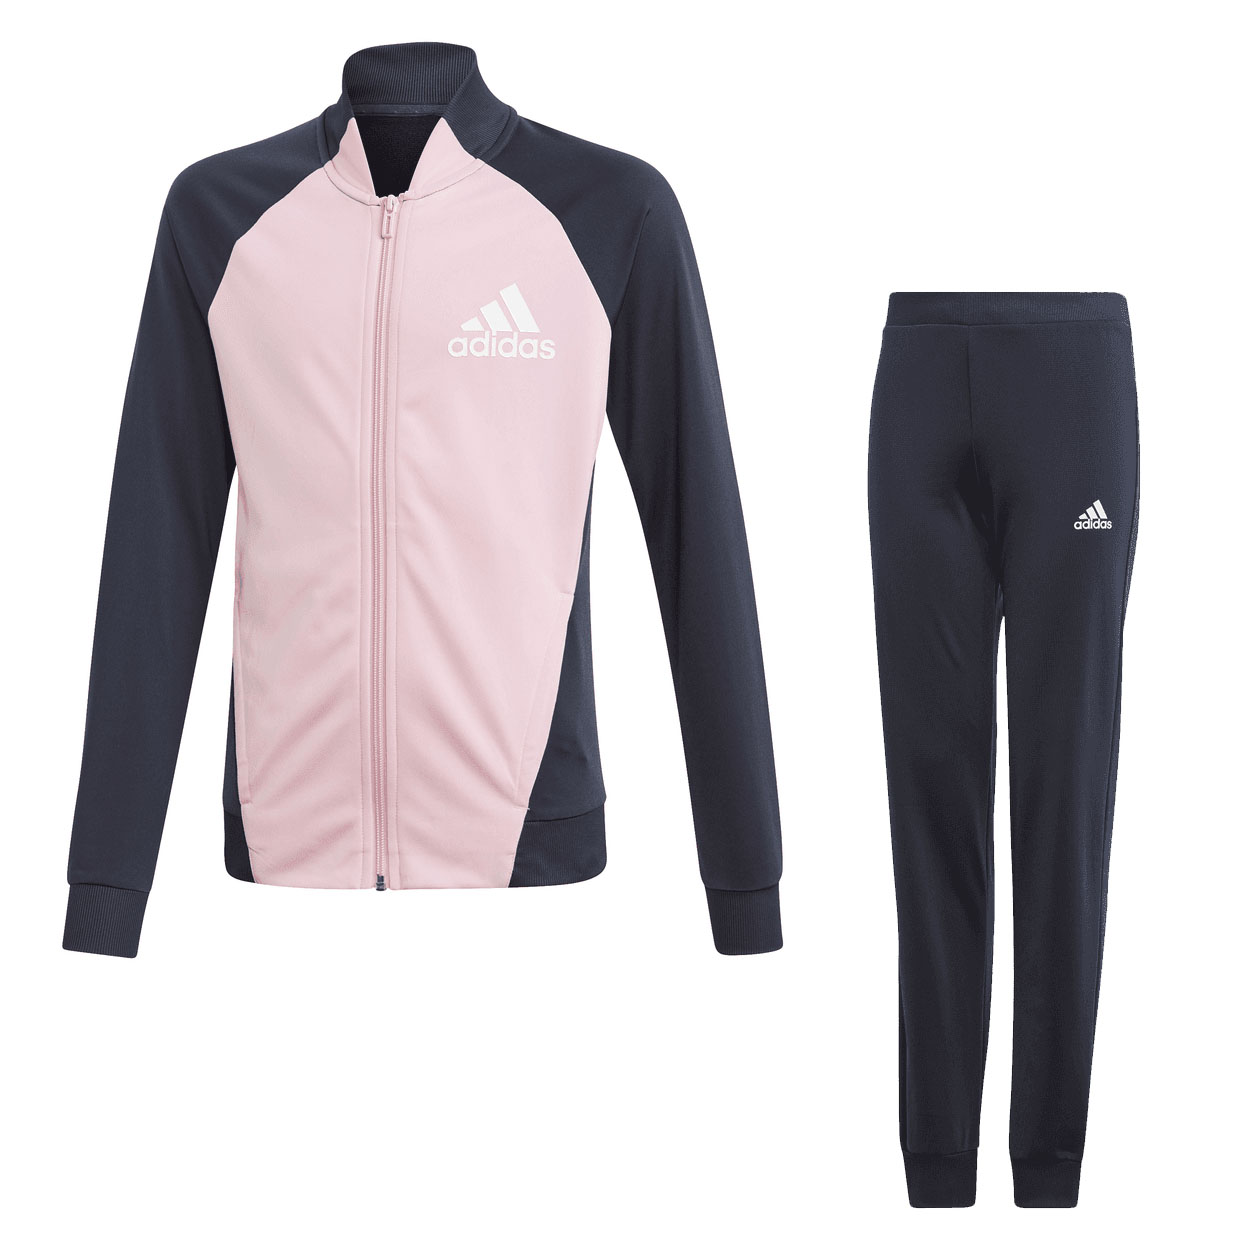 26e3b135d Details about adidas Girls Full Zip Polyester Track Top Pant Tracksuit Set  Pink/Navy